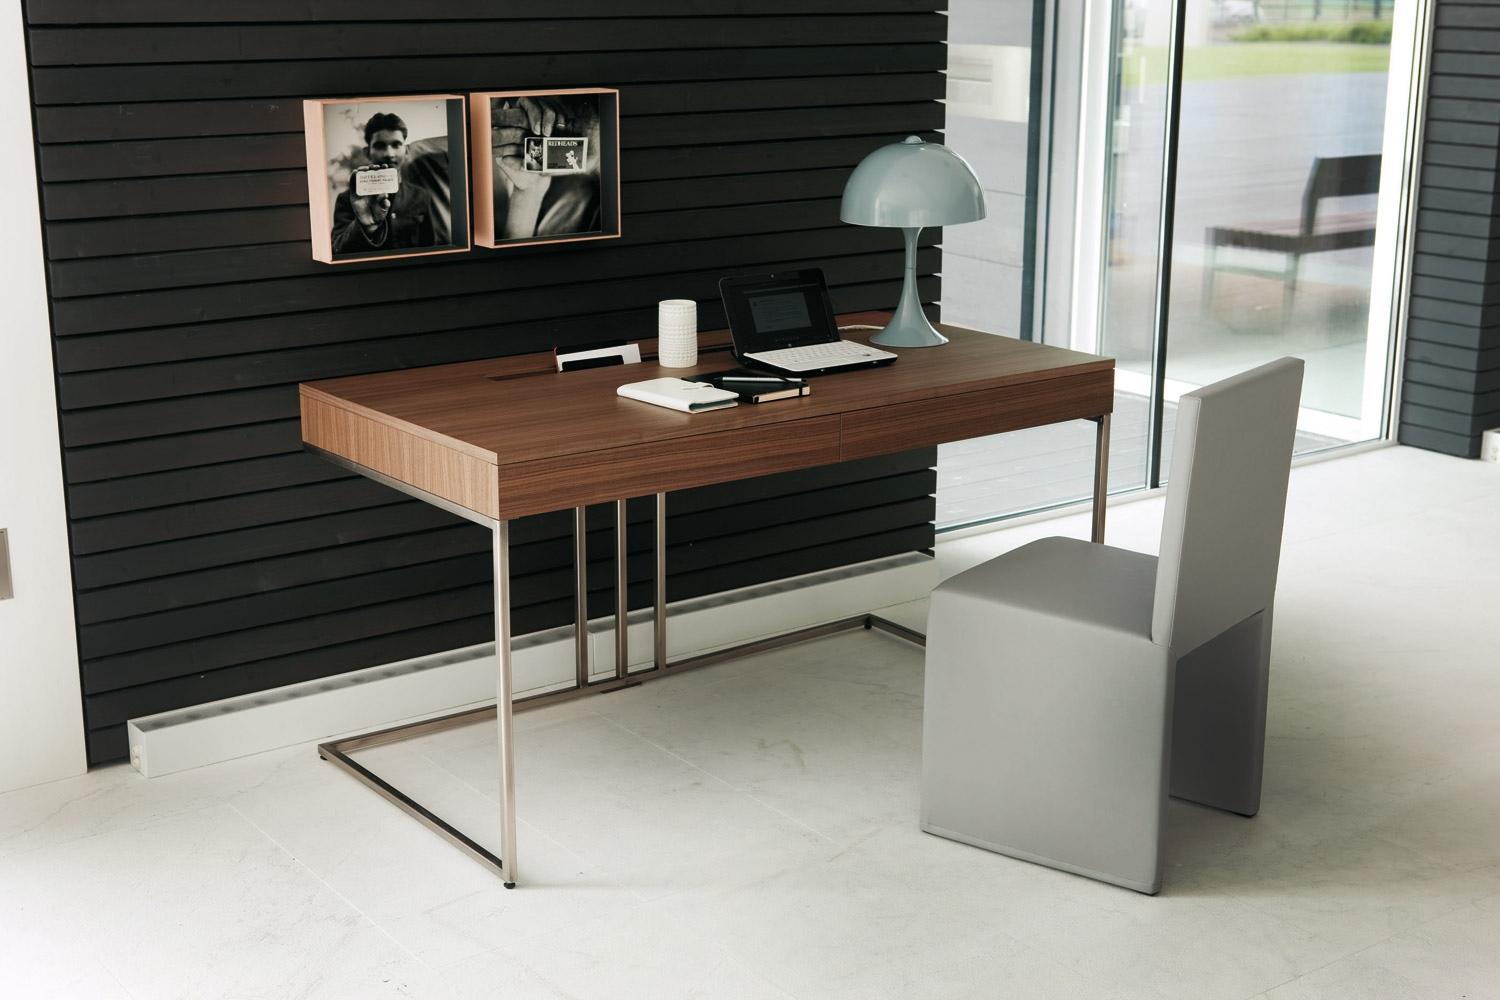 designer office tables. designer office tables t